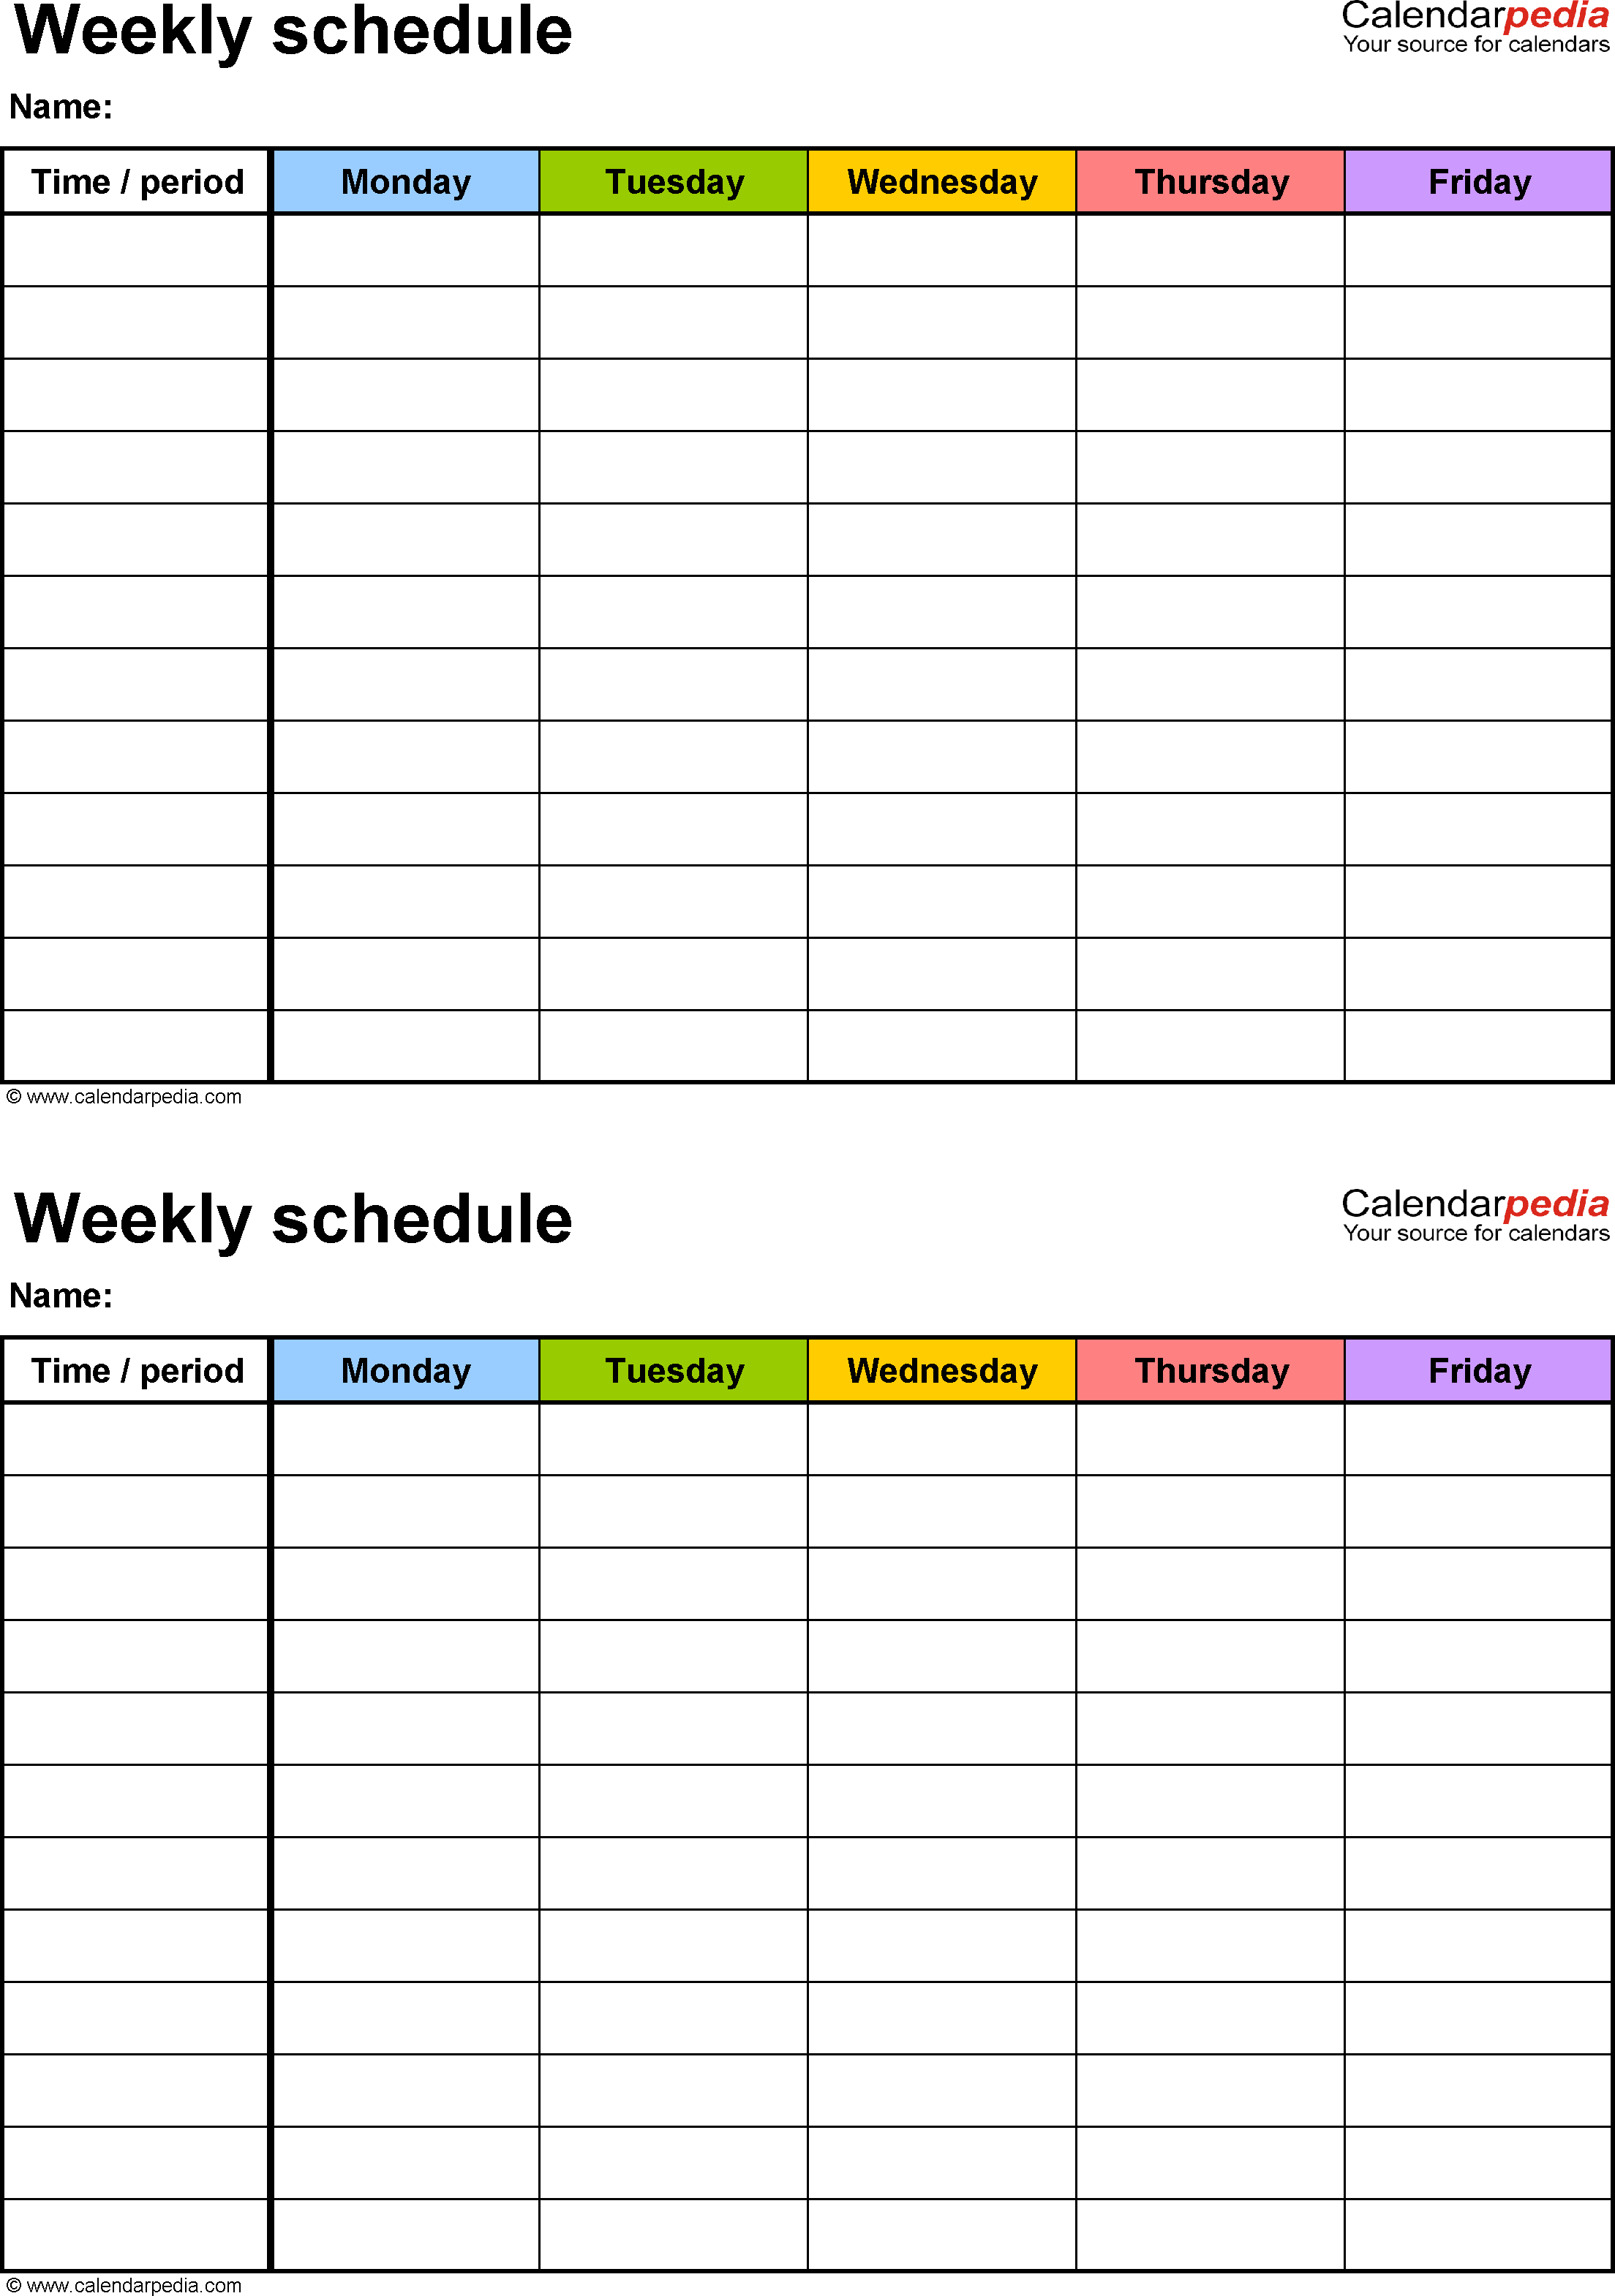 Free Weekly Schedule Templates For Excel - 18 Templates regarding 6 Week Work Schedule Template